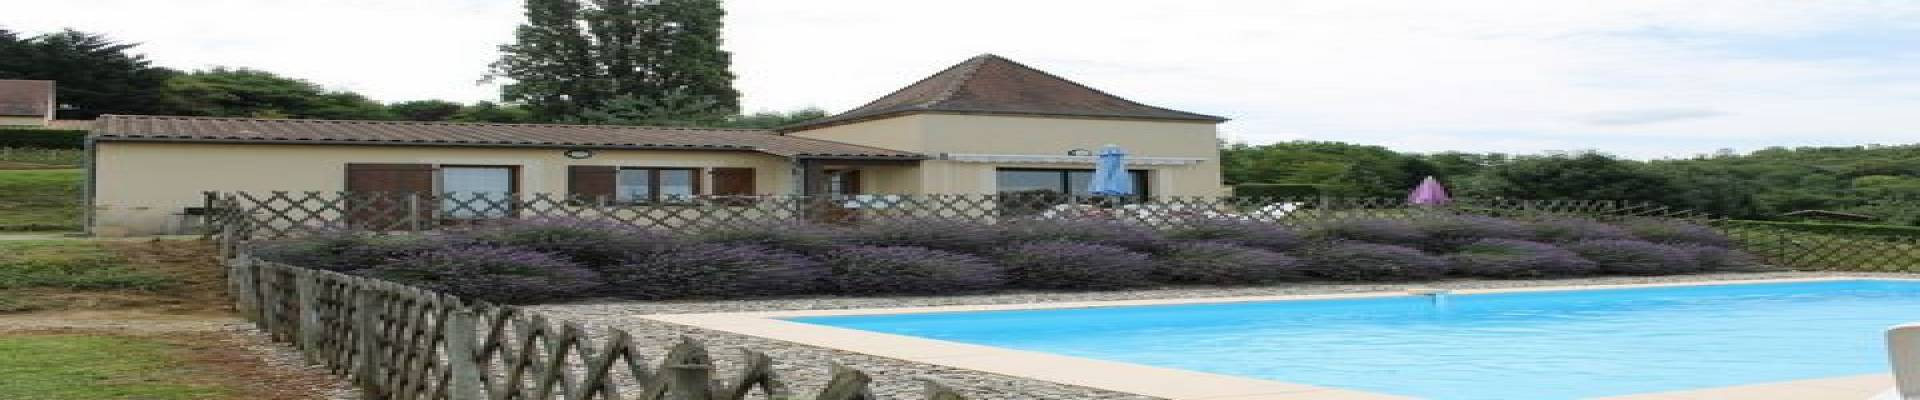 France Aquitaine Proissans 24200, 3 Bedrooms Bedrooms, ,1 BathroomBathrooms,Villa,For sale,7413